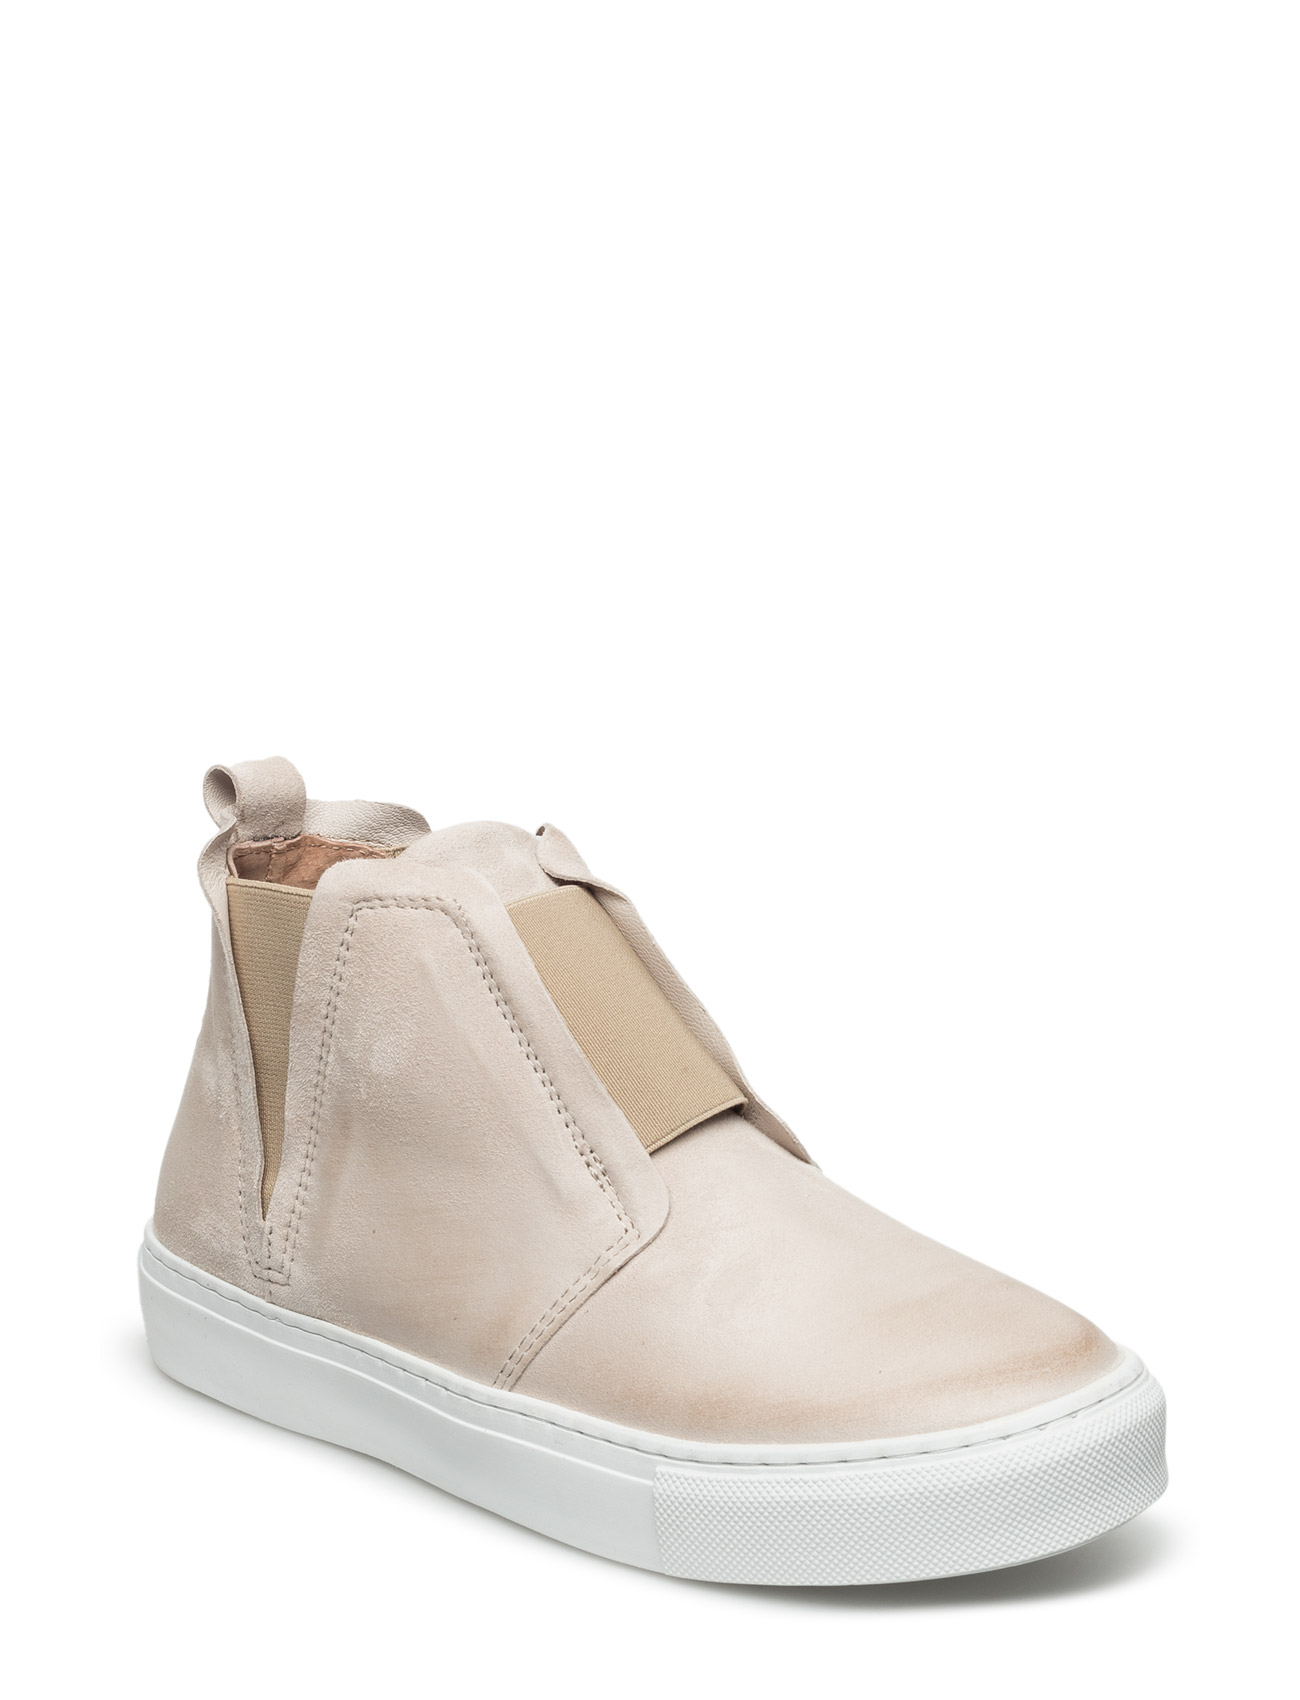 Polly Sneakers Cream Sneakers til Damer i